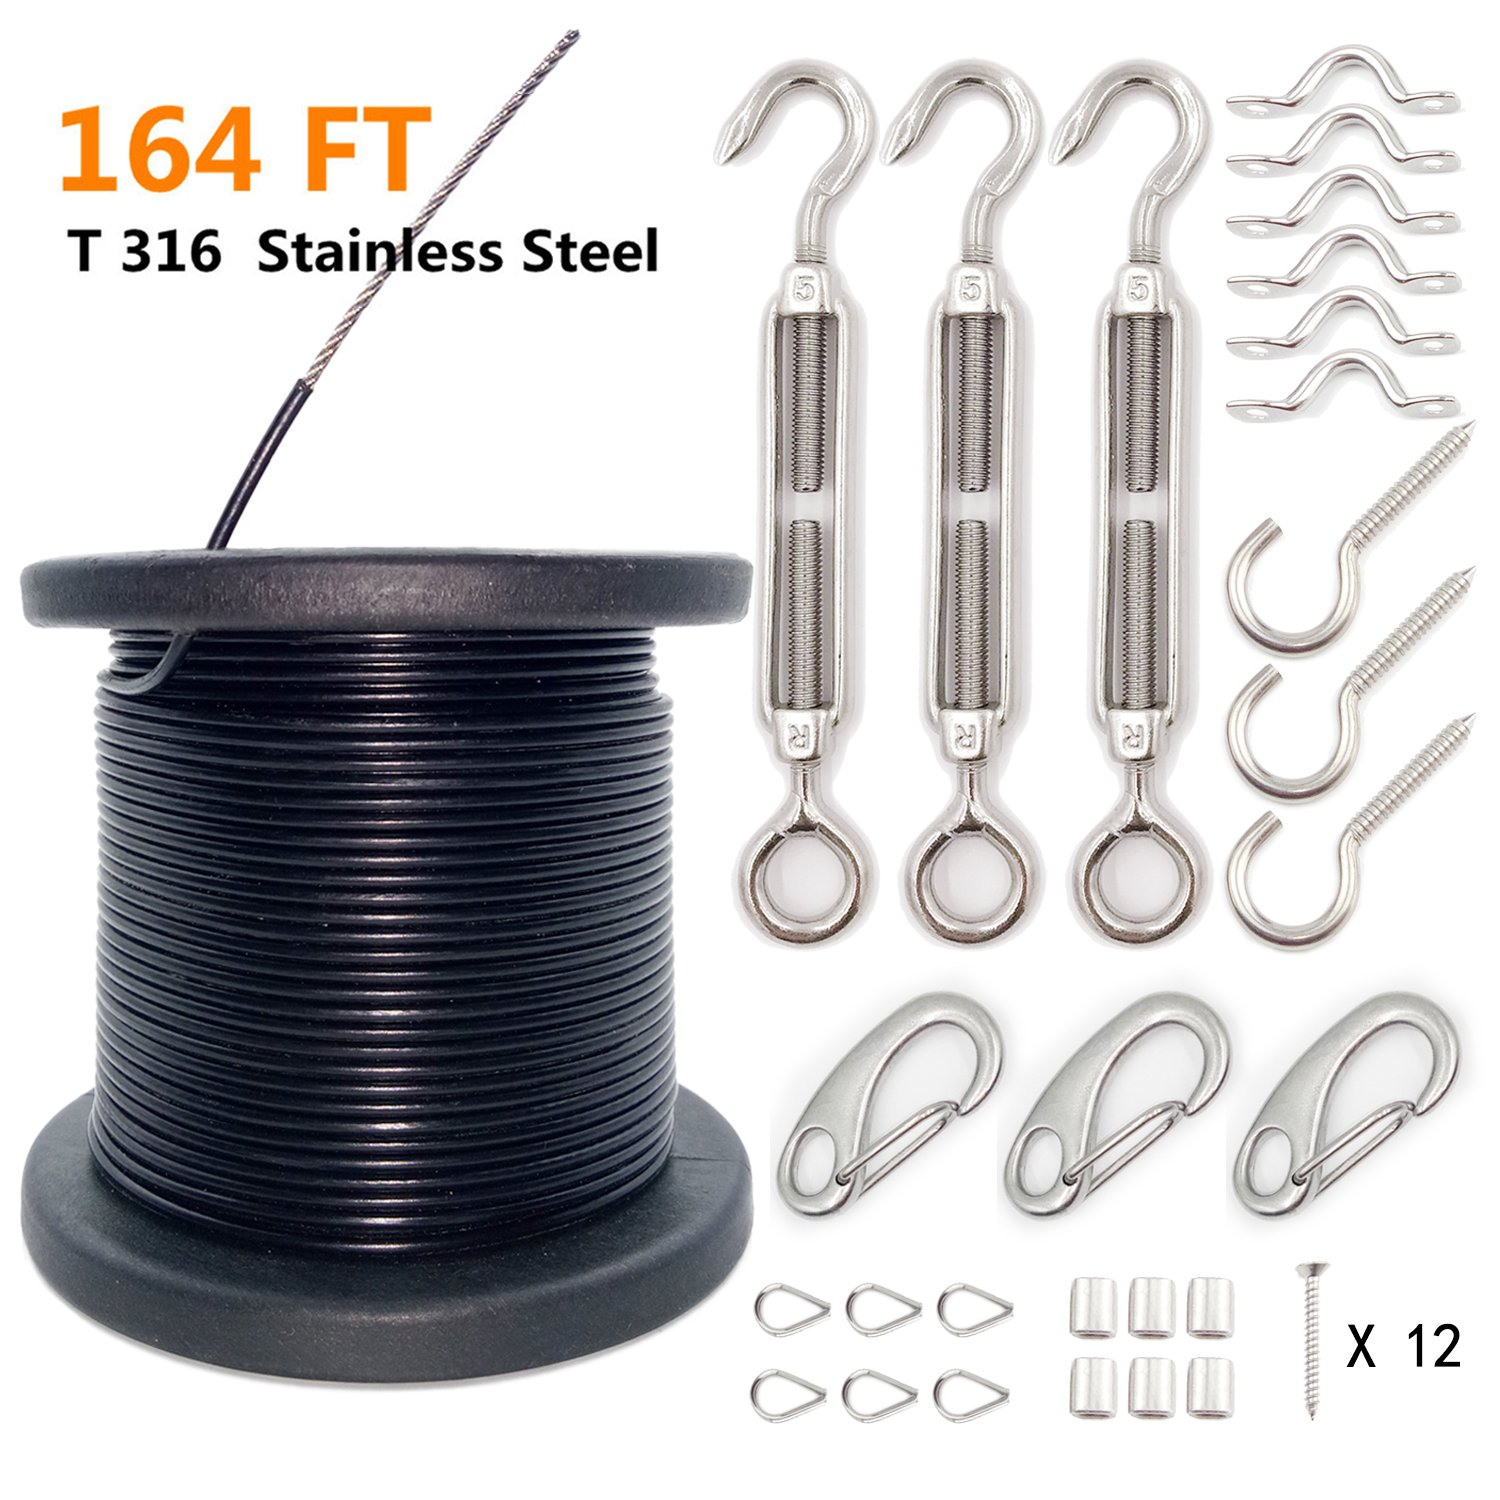 Aotree Globe String Light Suspension Kit, Outdoor Light Guide Wire, Stainless Steel Hanging Cable Kit, 164 ft with Turnbuckles and Hooks